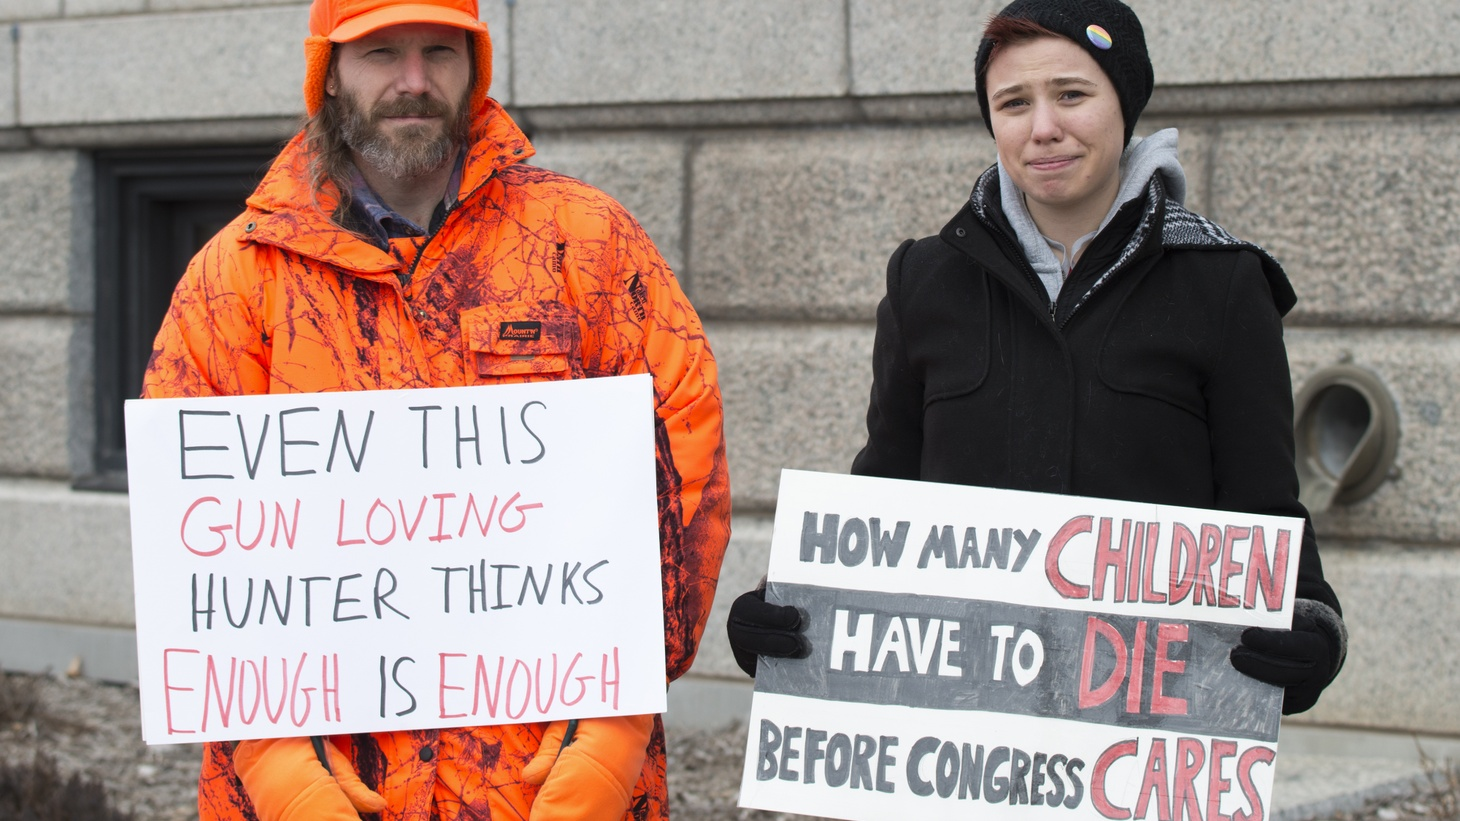 On March 28, 2018, more than 10,000 people marched through St. Paul, Minnesota to demand lawmakers take action on gun law reform.